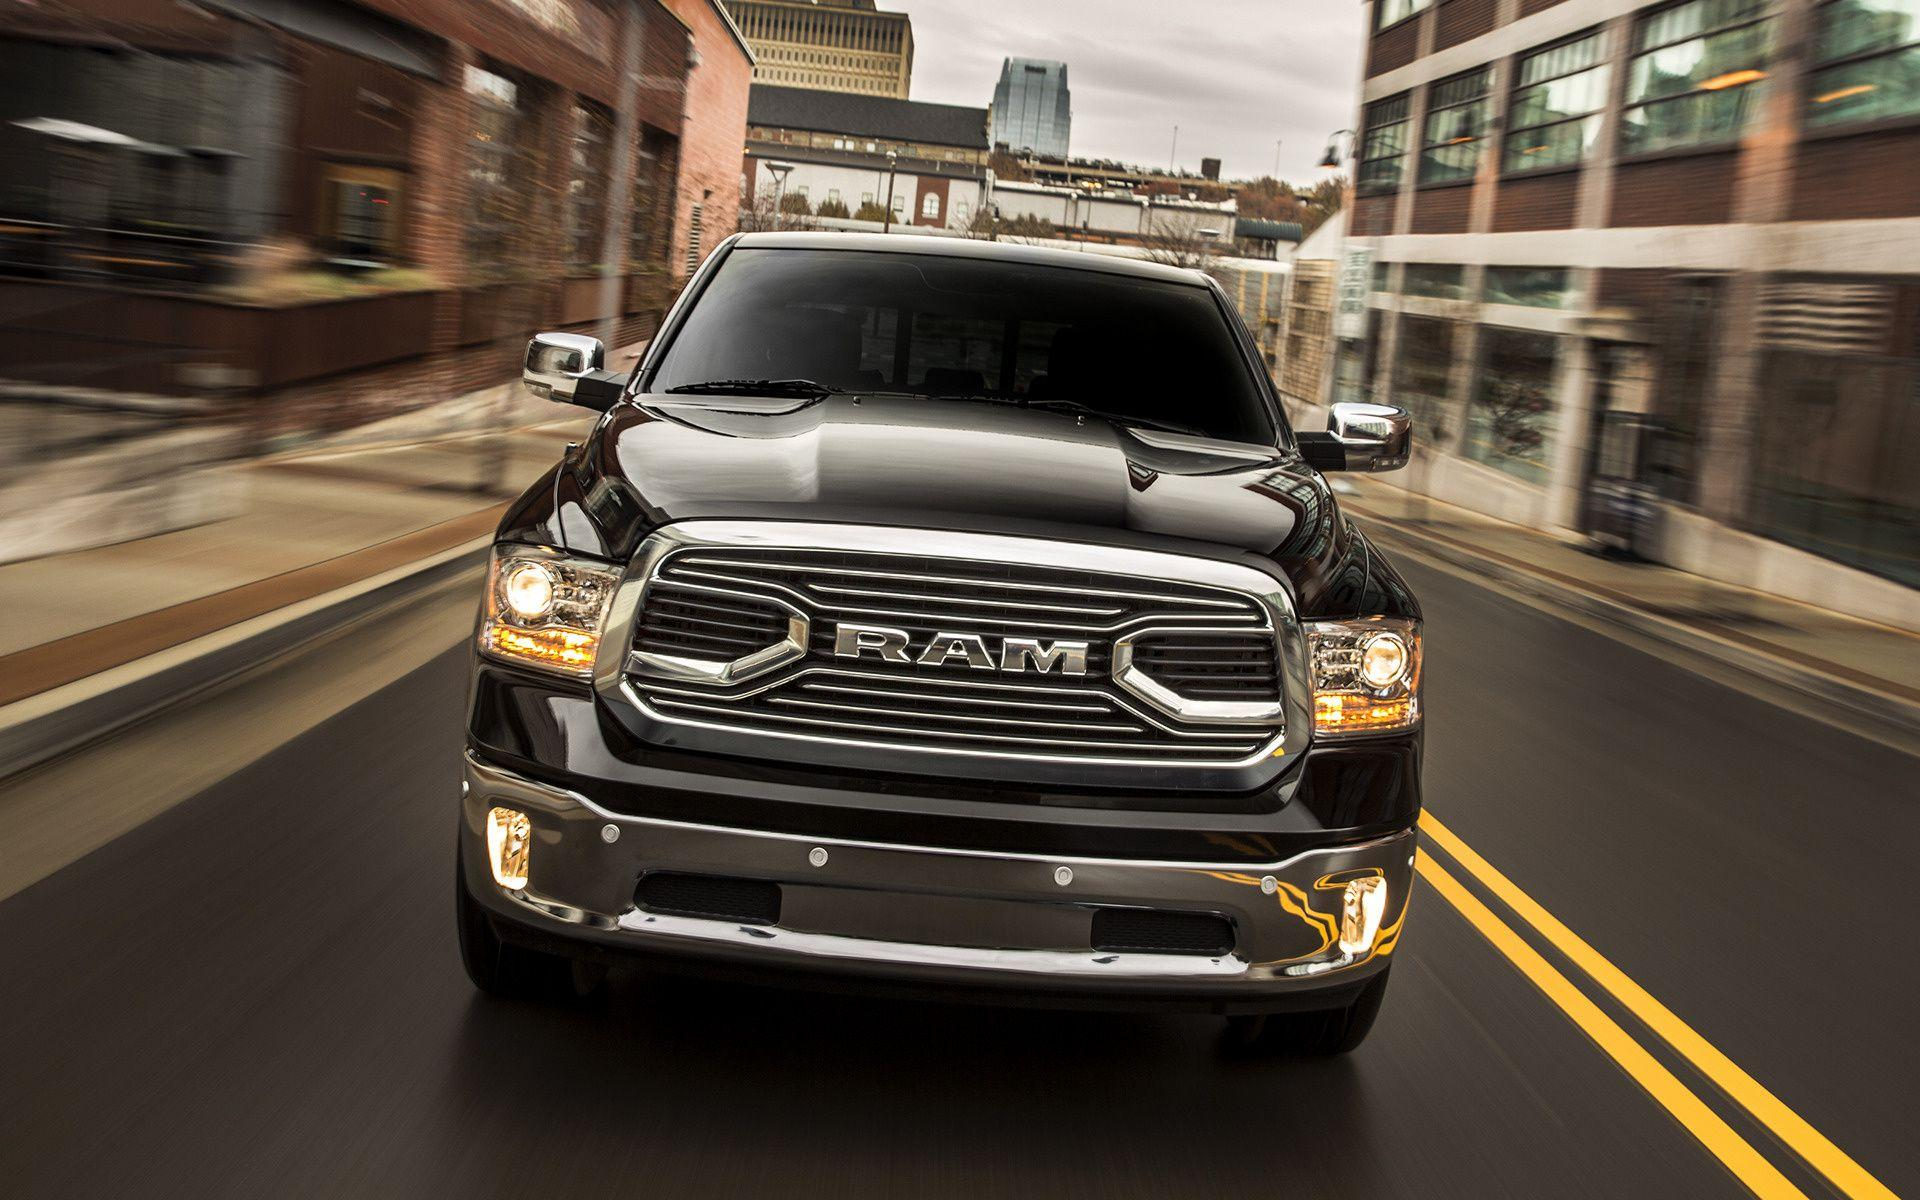 Ram 1500 Laramie Limited Crew Cab (2015) Wallpapers and HD Images ...